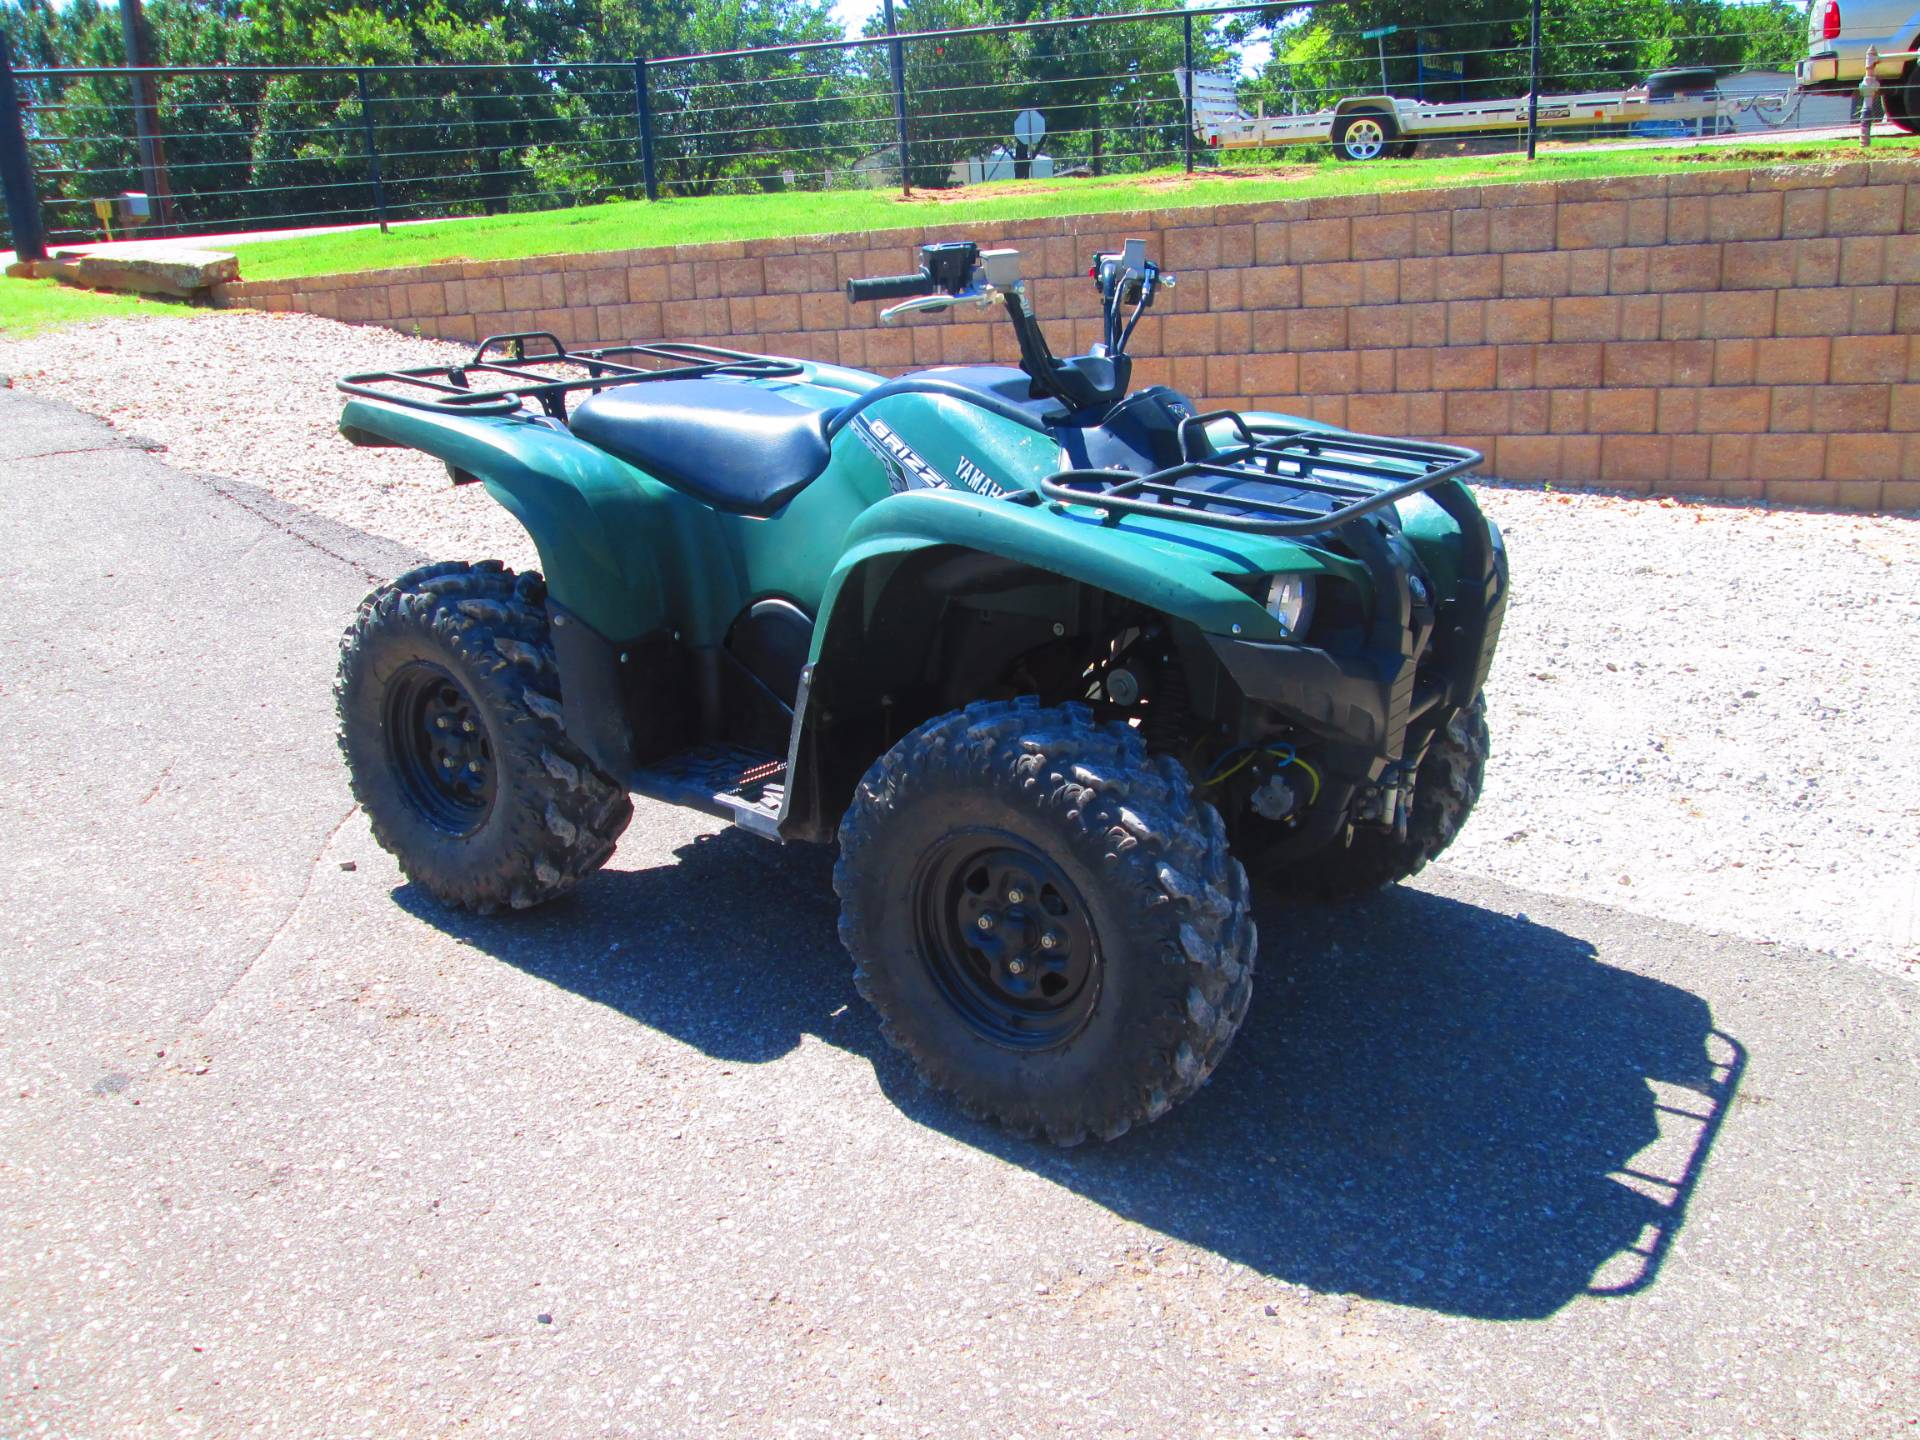 2014 Yamaha Grizzly 700 FI Auto. 4x4 EPS in Jones, Oklahoma